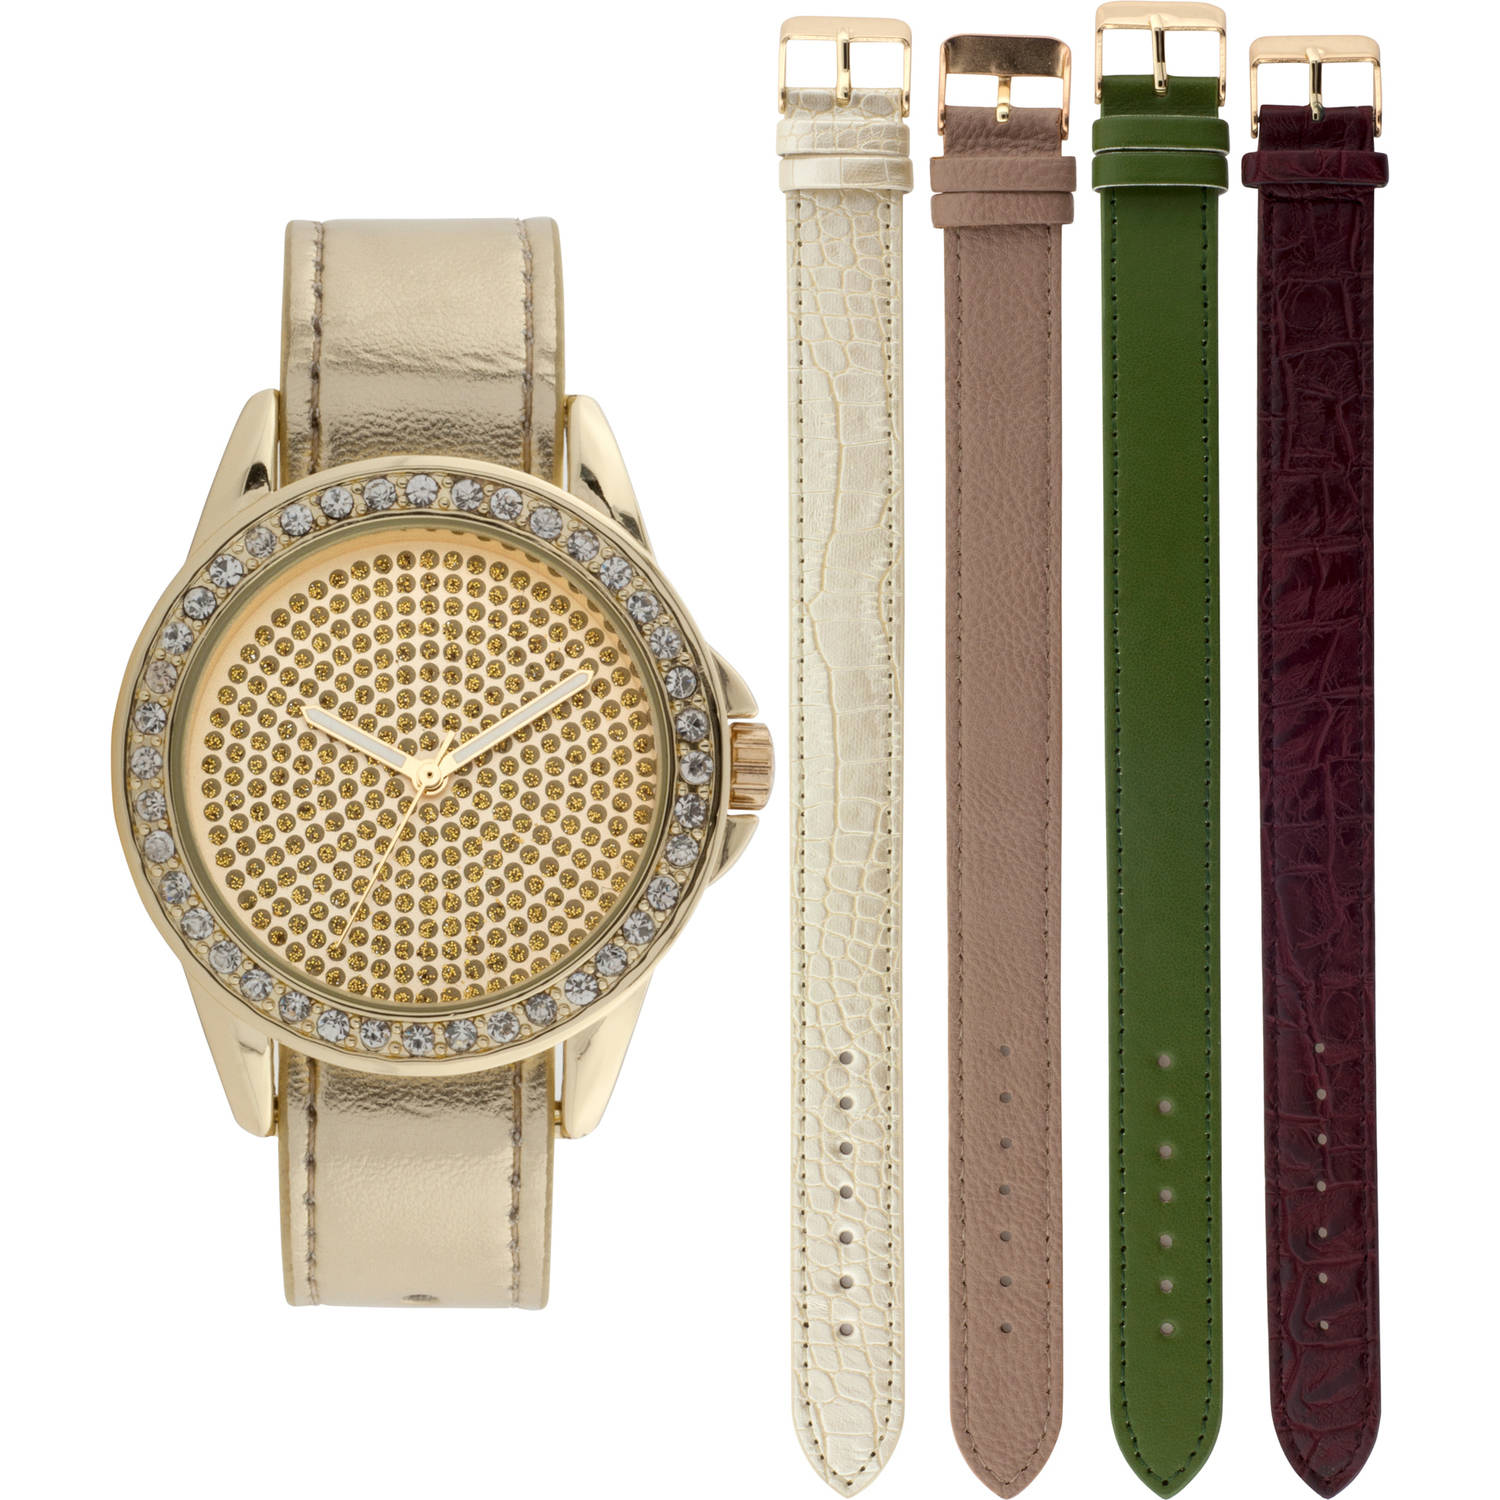 Women's Crystal Accented Bezel Round Gold Stone Case Watch Set, 5 Various Color Interchangeable Straps